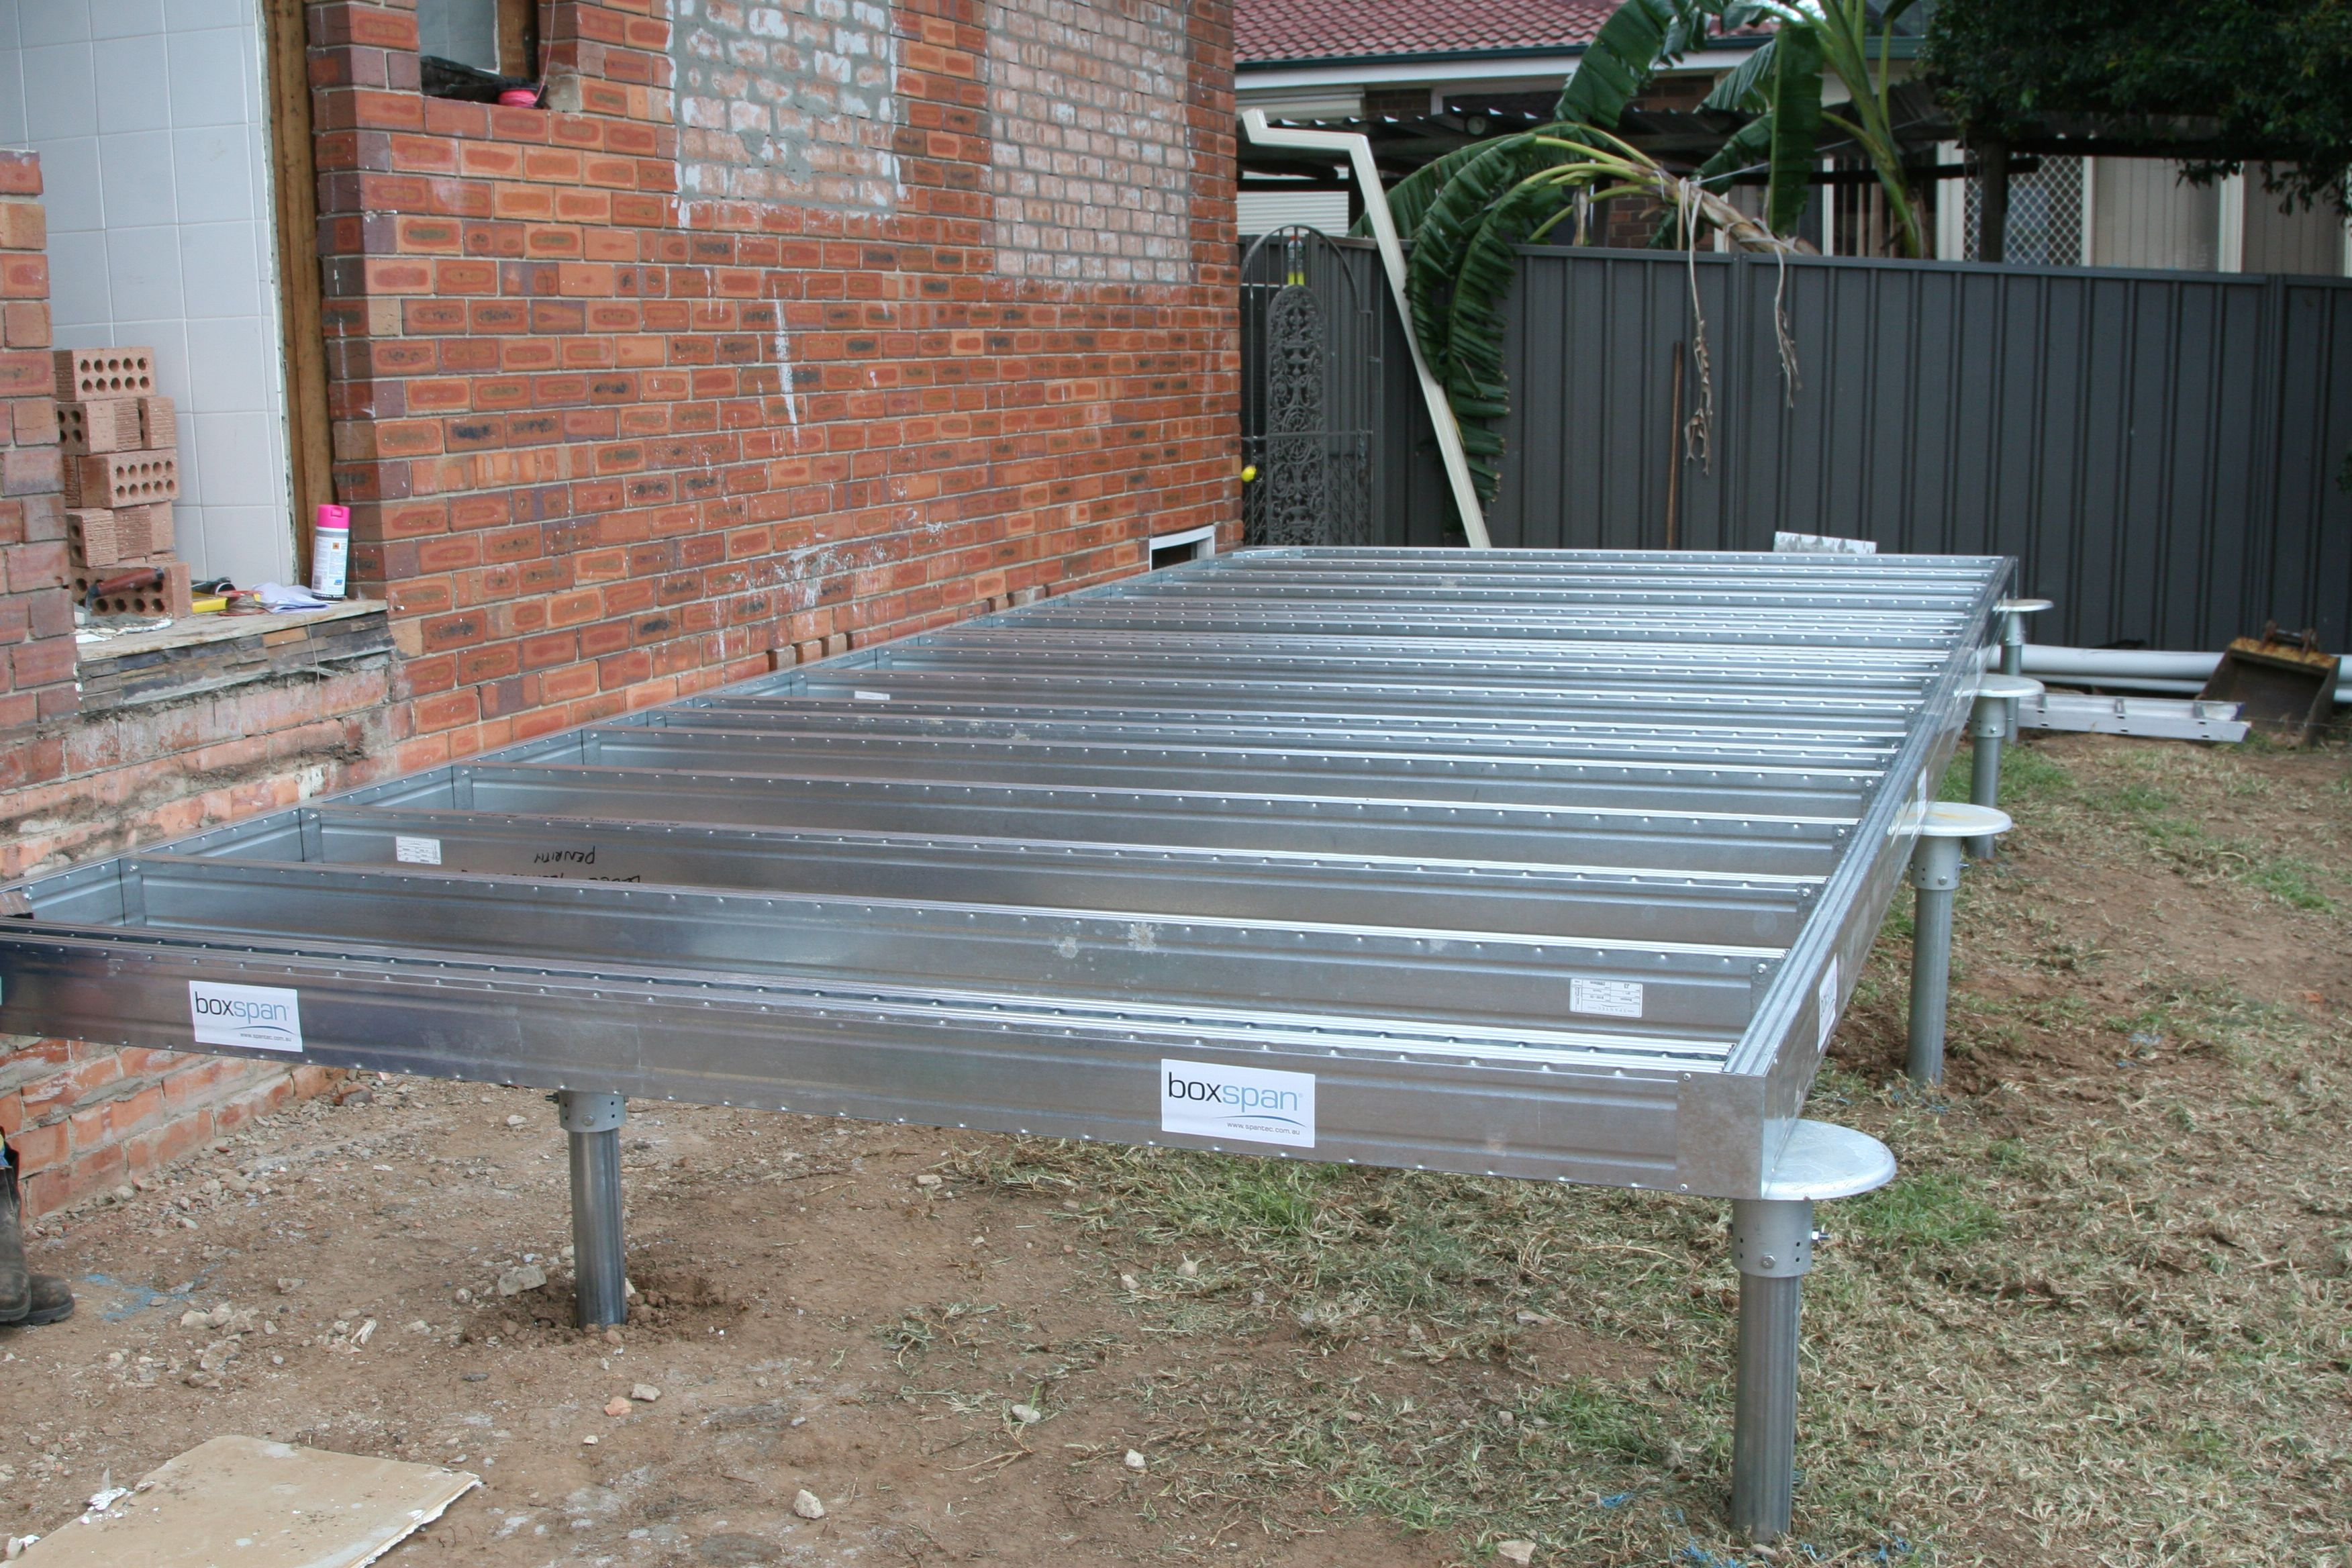 Extension mobili ~ The first of two prefabricated boxspan floor frames installed